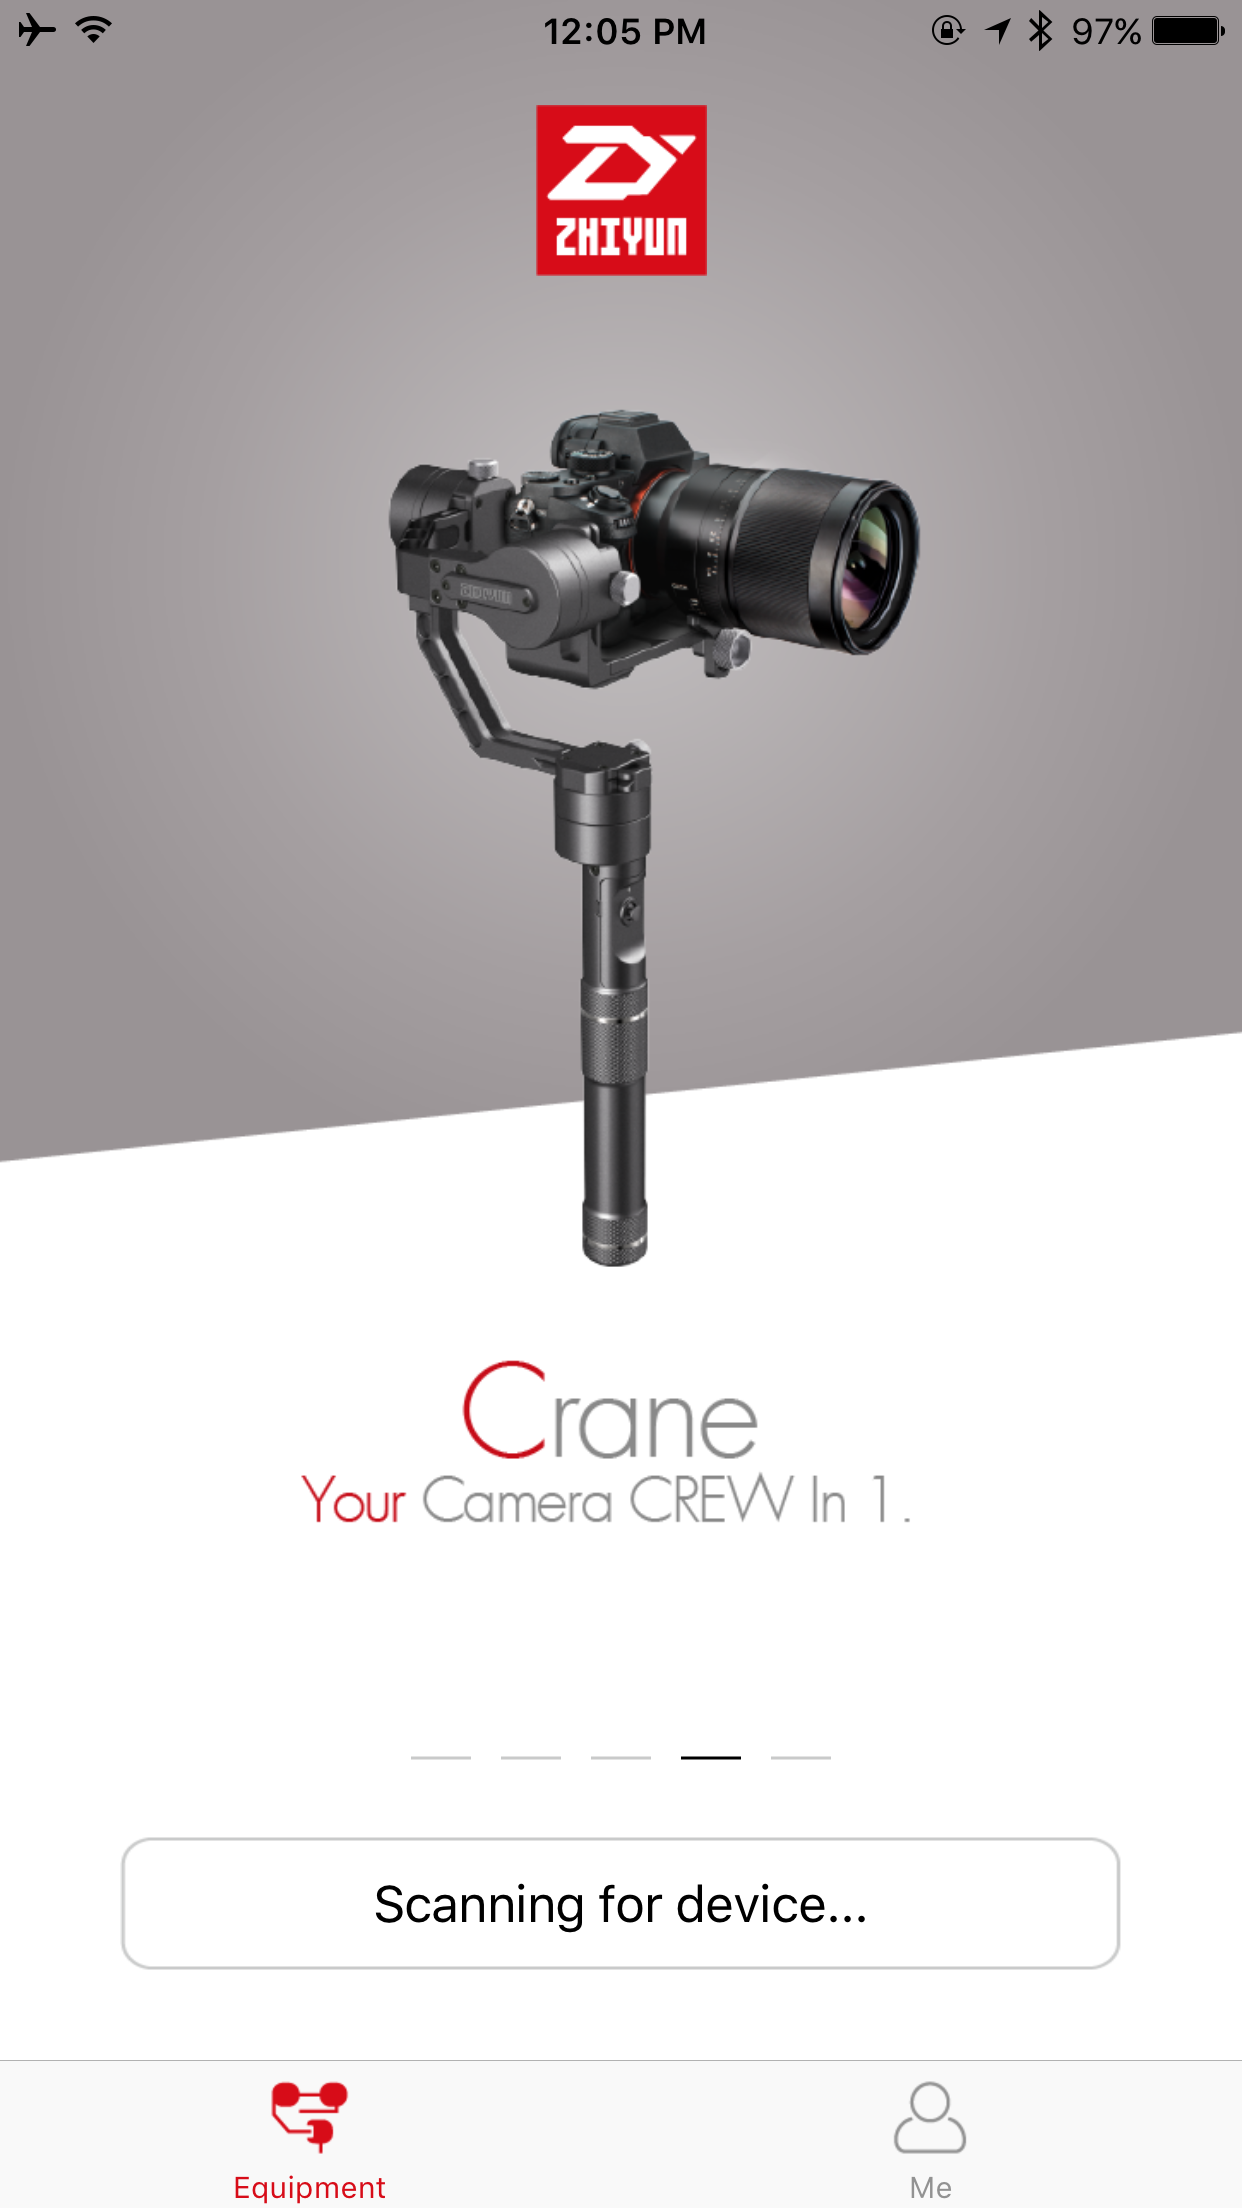 Gudsen Moza Air Vs Zhiyun Crane Media Design Imaging Z1 Ver 20 3 Axis Stabilizer For Mirrorless Camera They Got Two Apps One Is This App It Was A Bit Hard To Find The Info